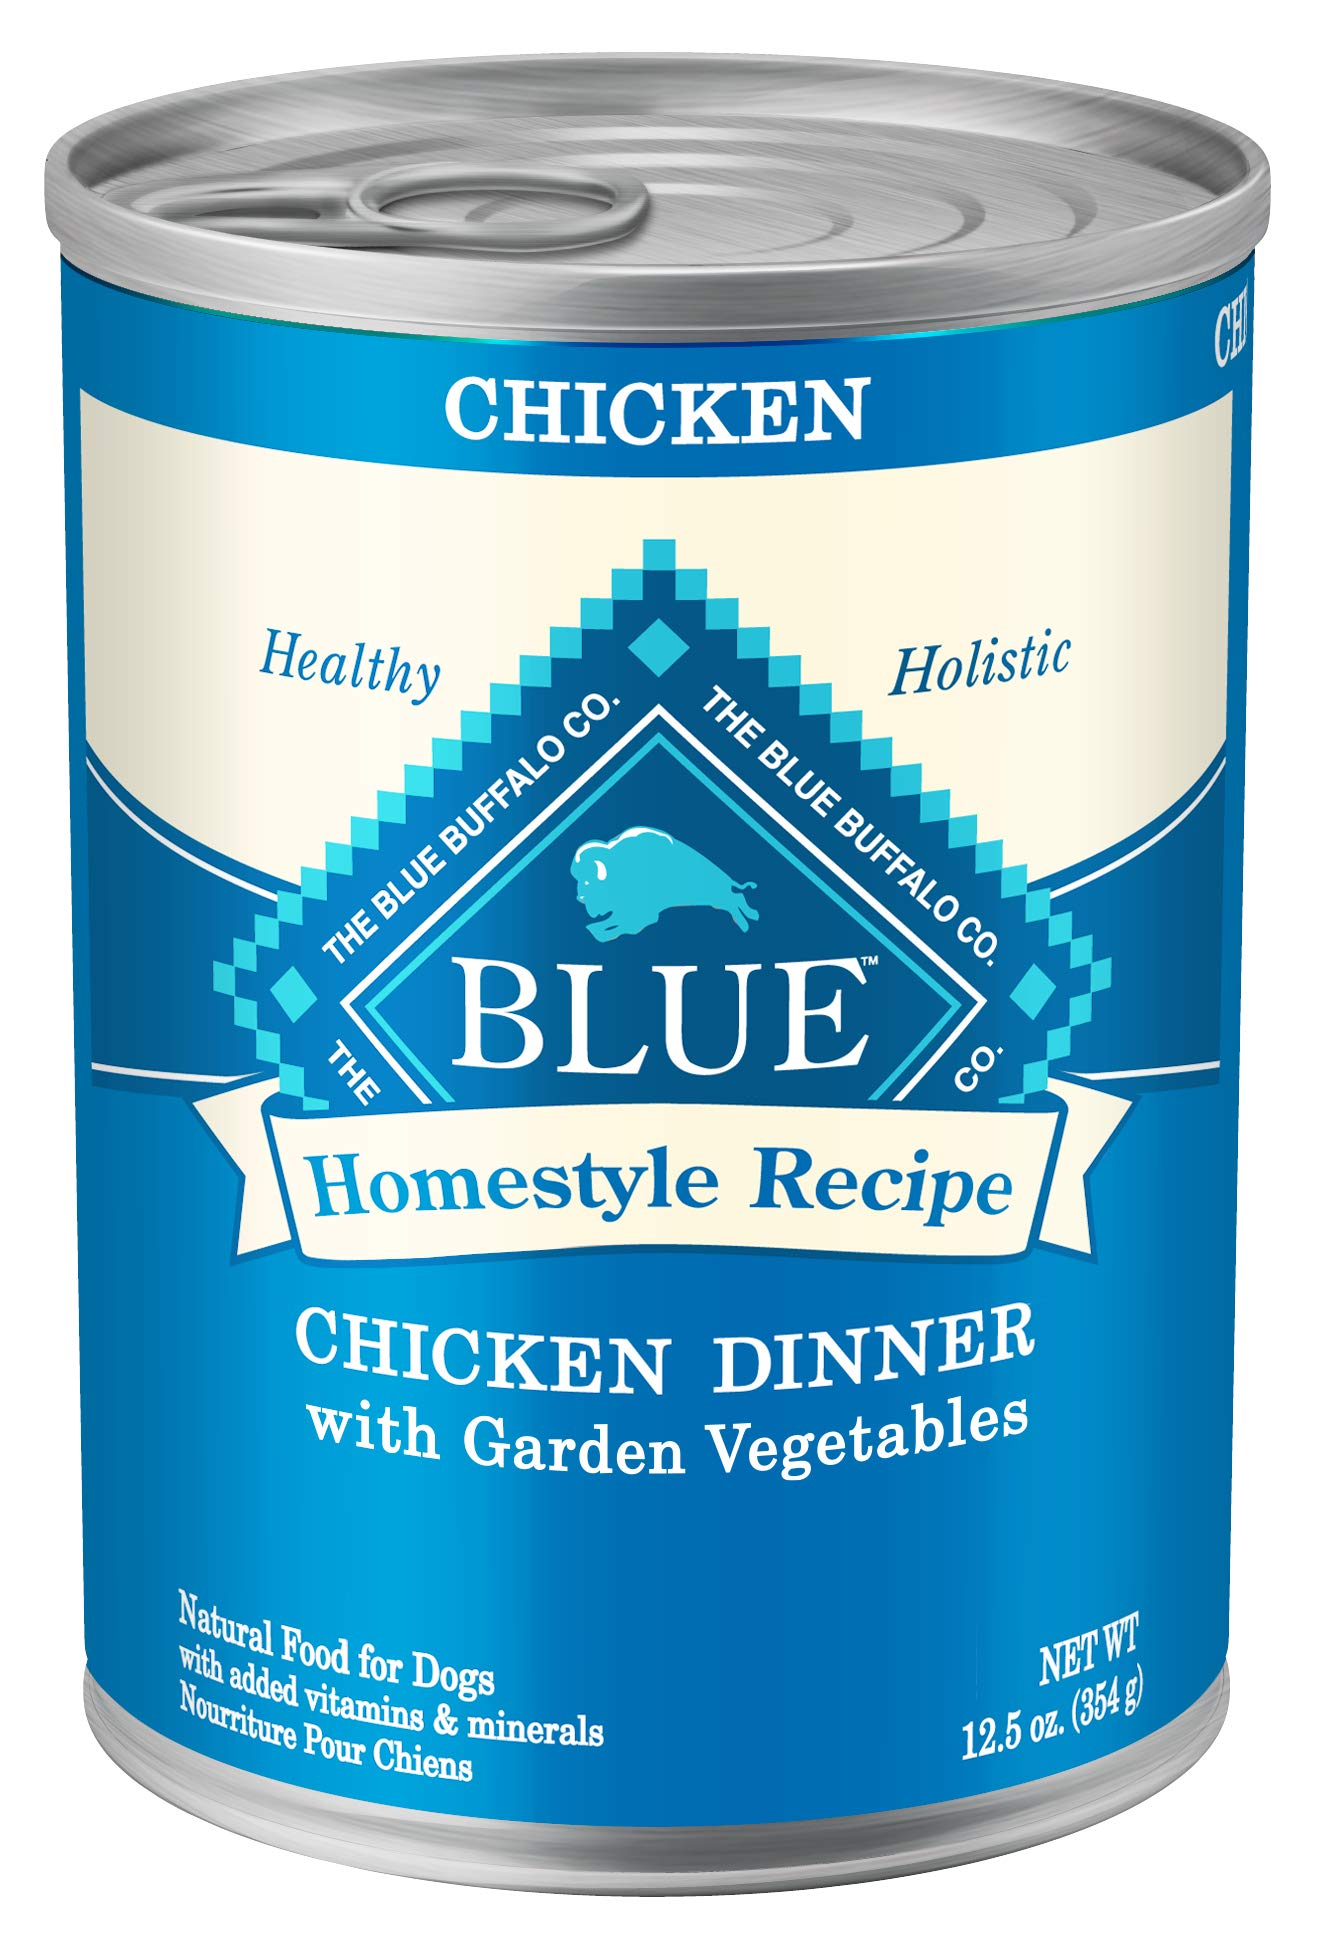 Blue Buffalo Homestyle Recipe Natural Adult Wet Dog Food, Chicken 12.5-oz can (Pack of 12) by Blue Buffalo